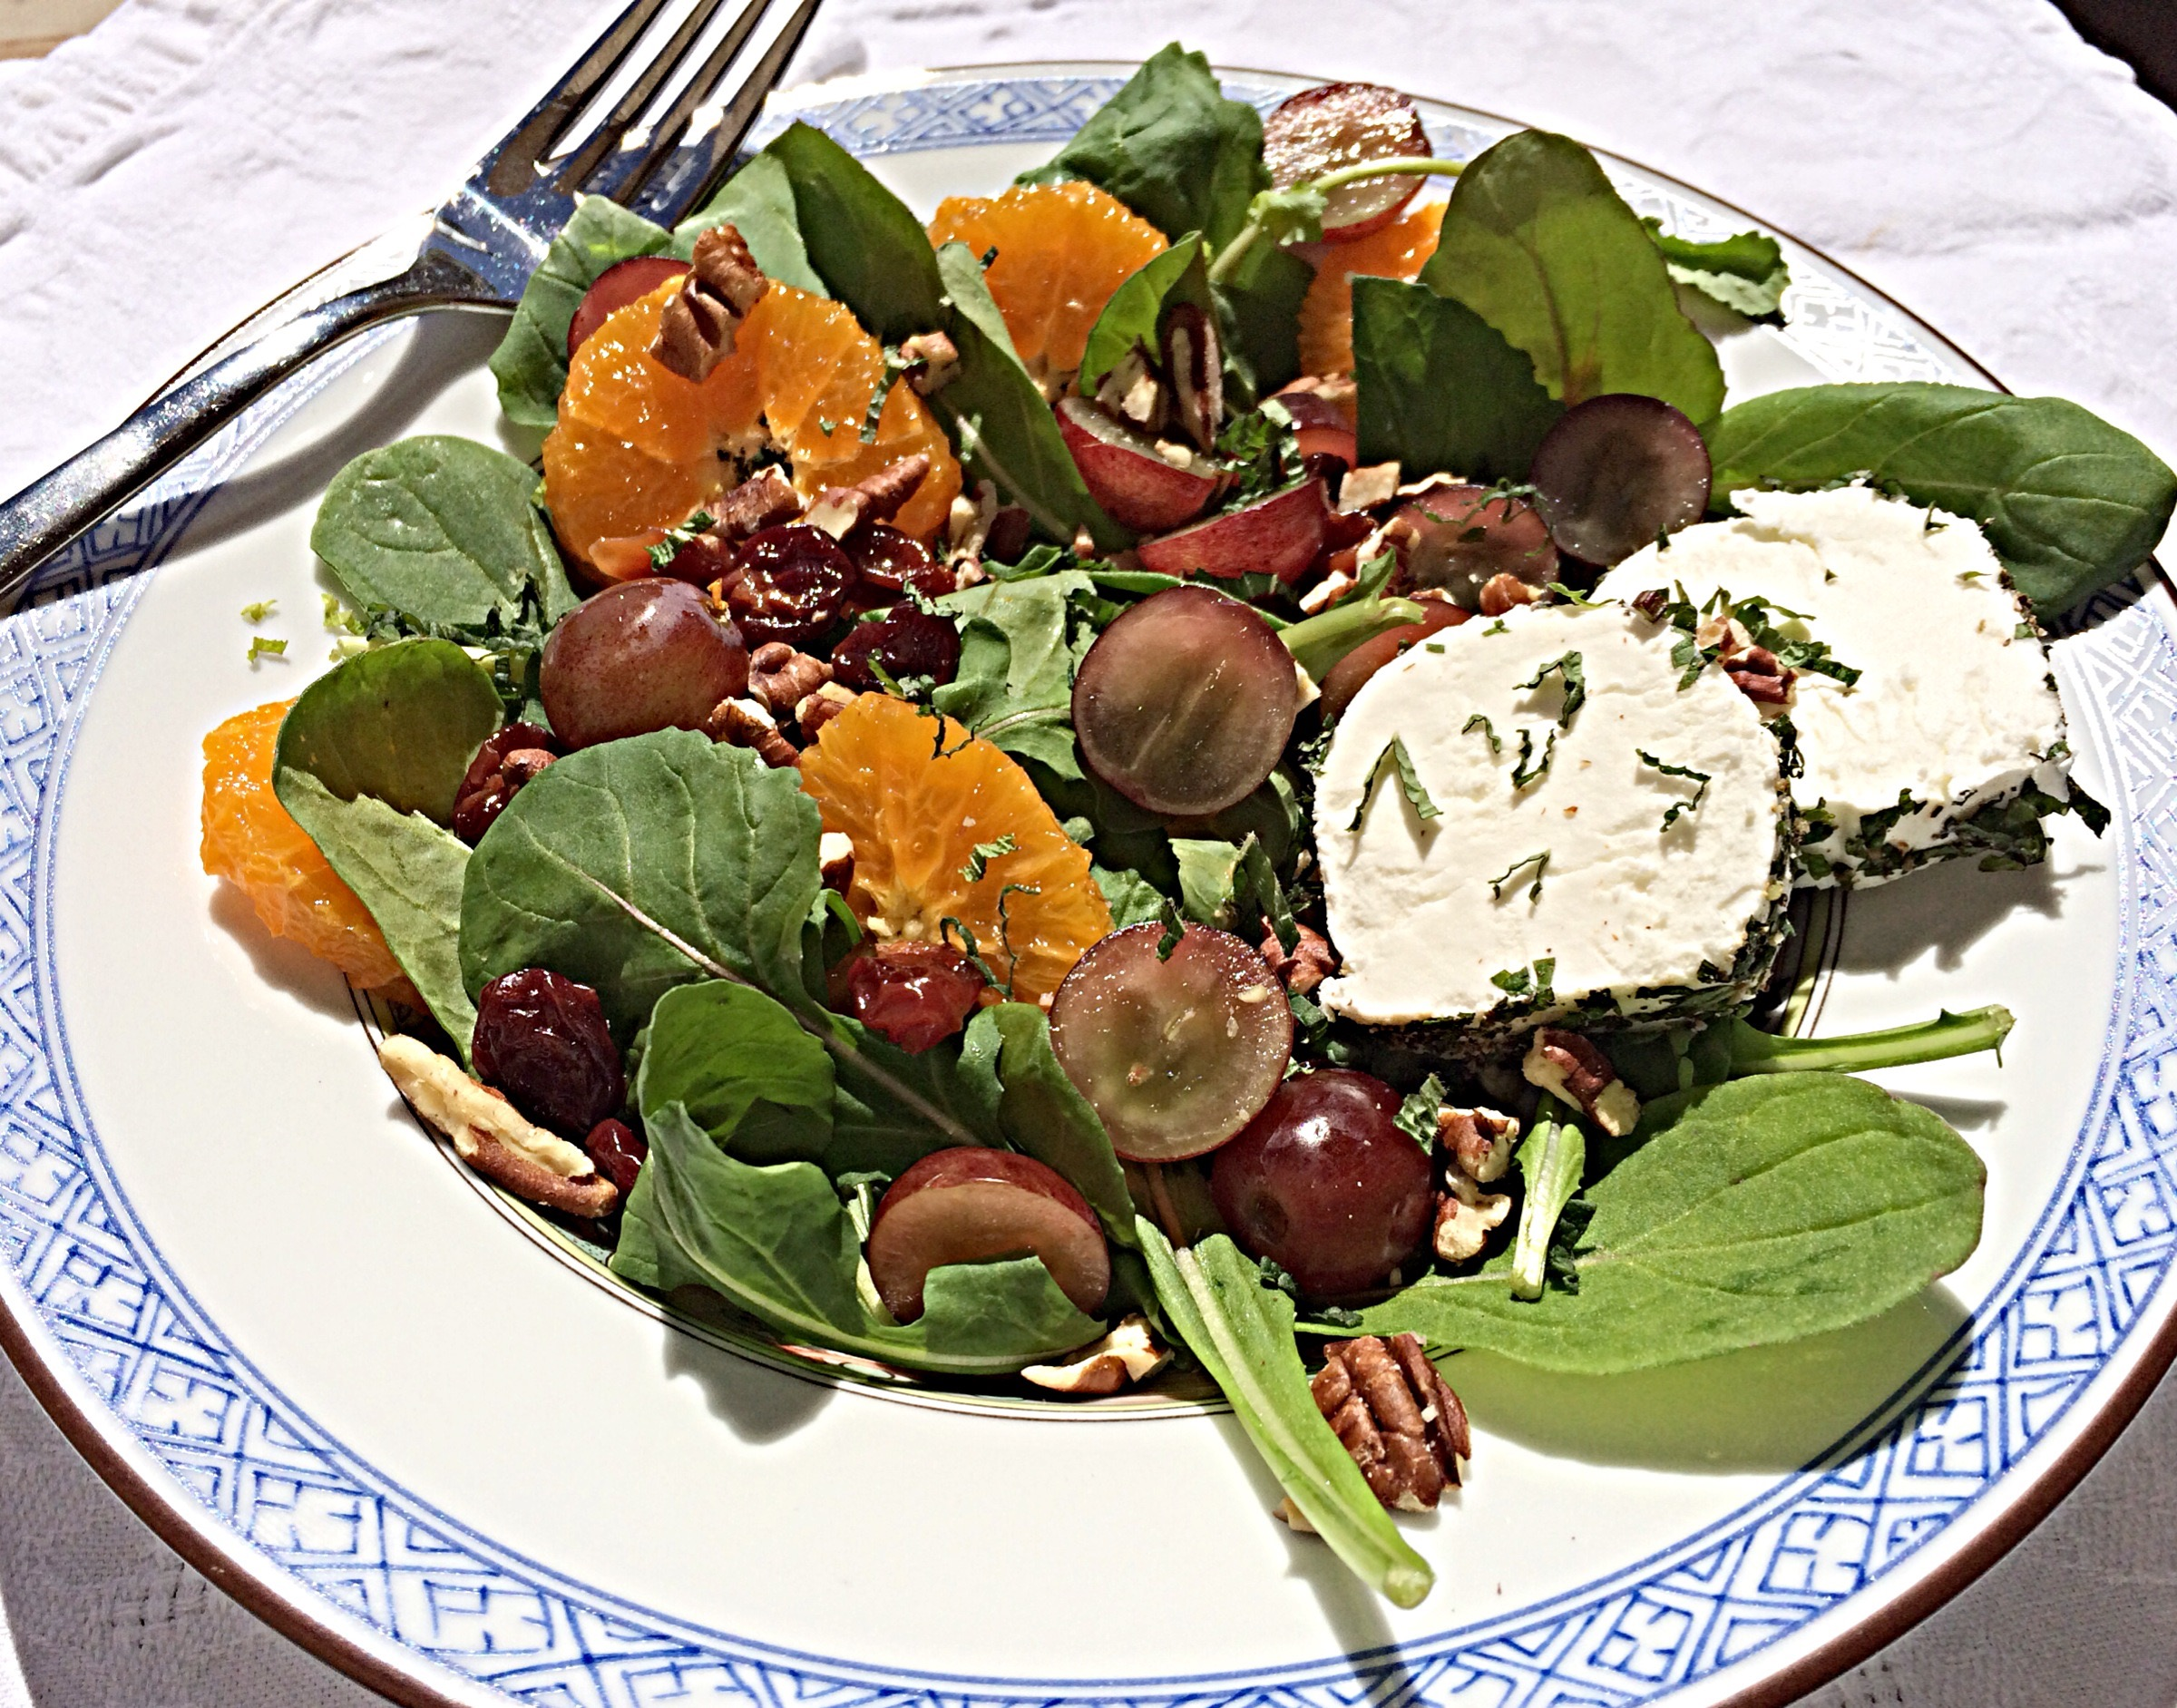 Oranges, dried cherries, chevre rolles in chopped mint and arugula make a great dairy based passover salad!